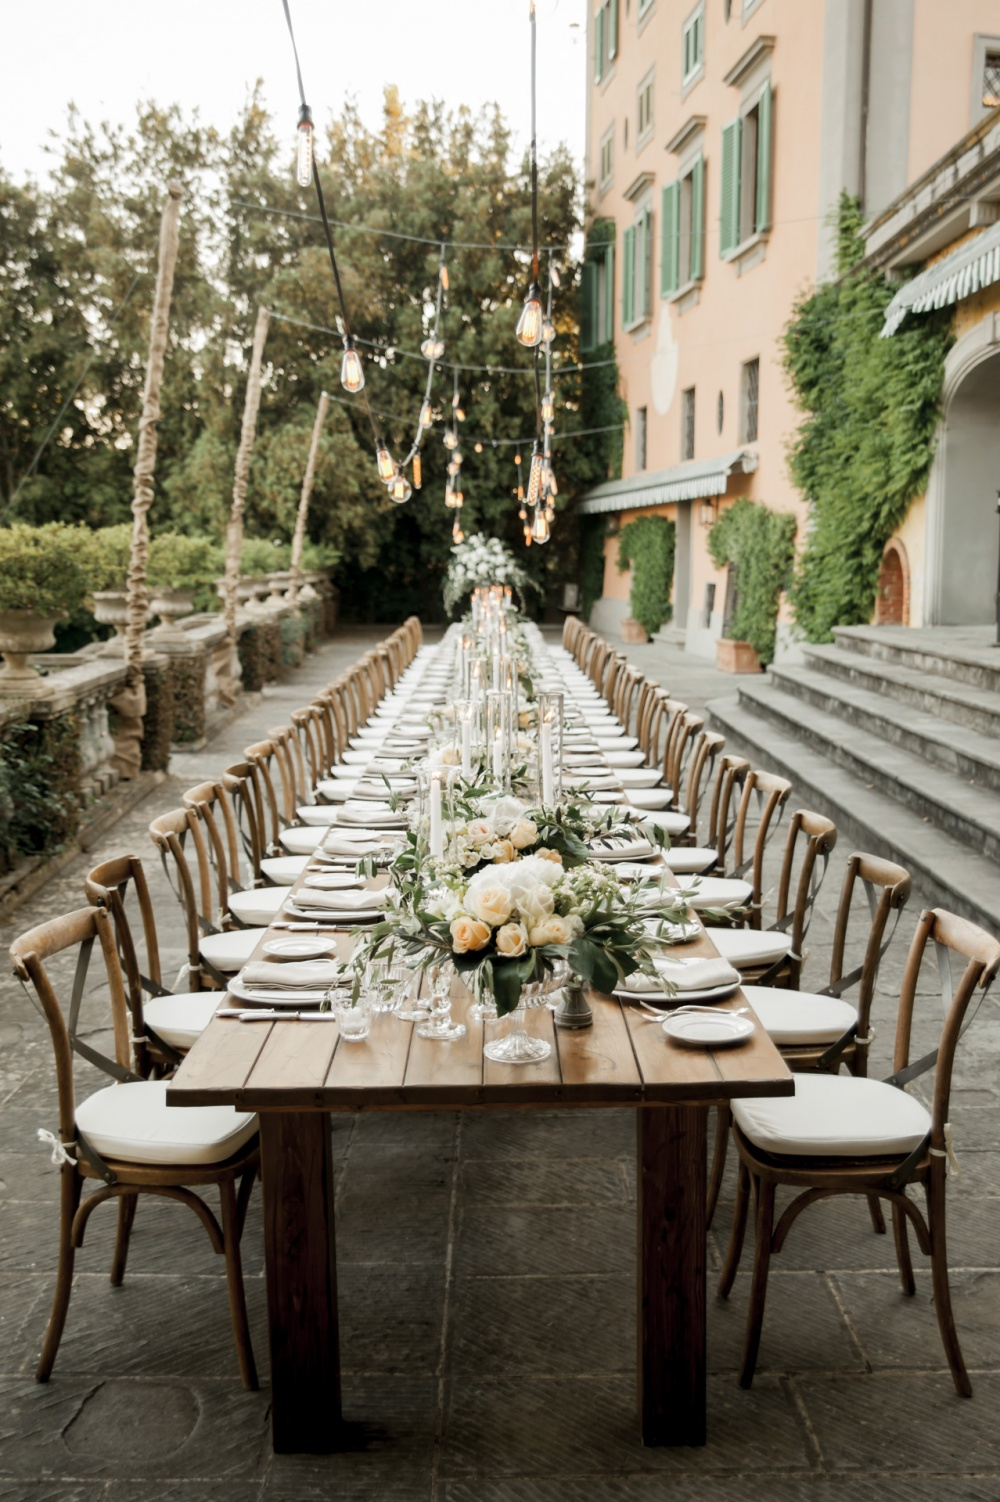 table setting in a charming wedding villa